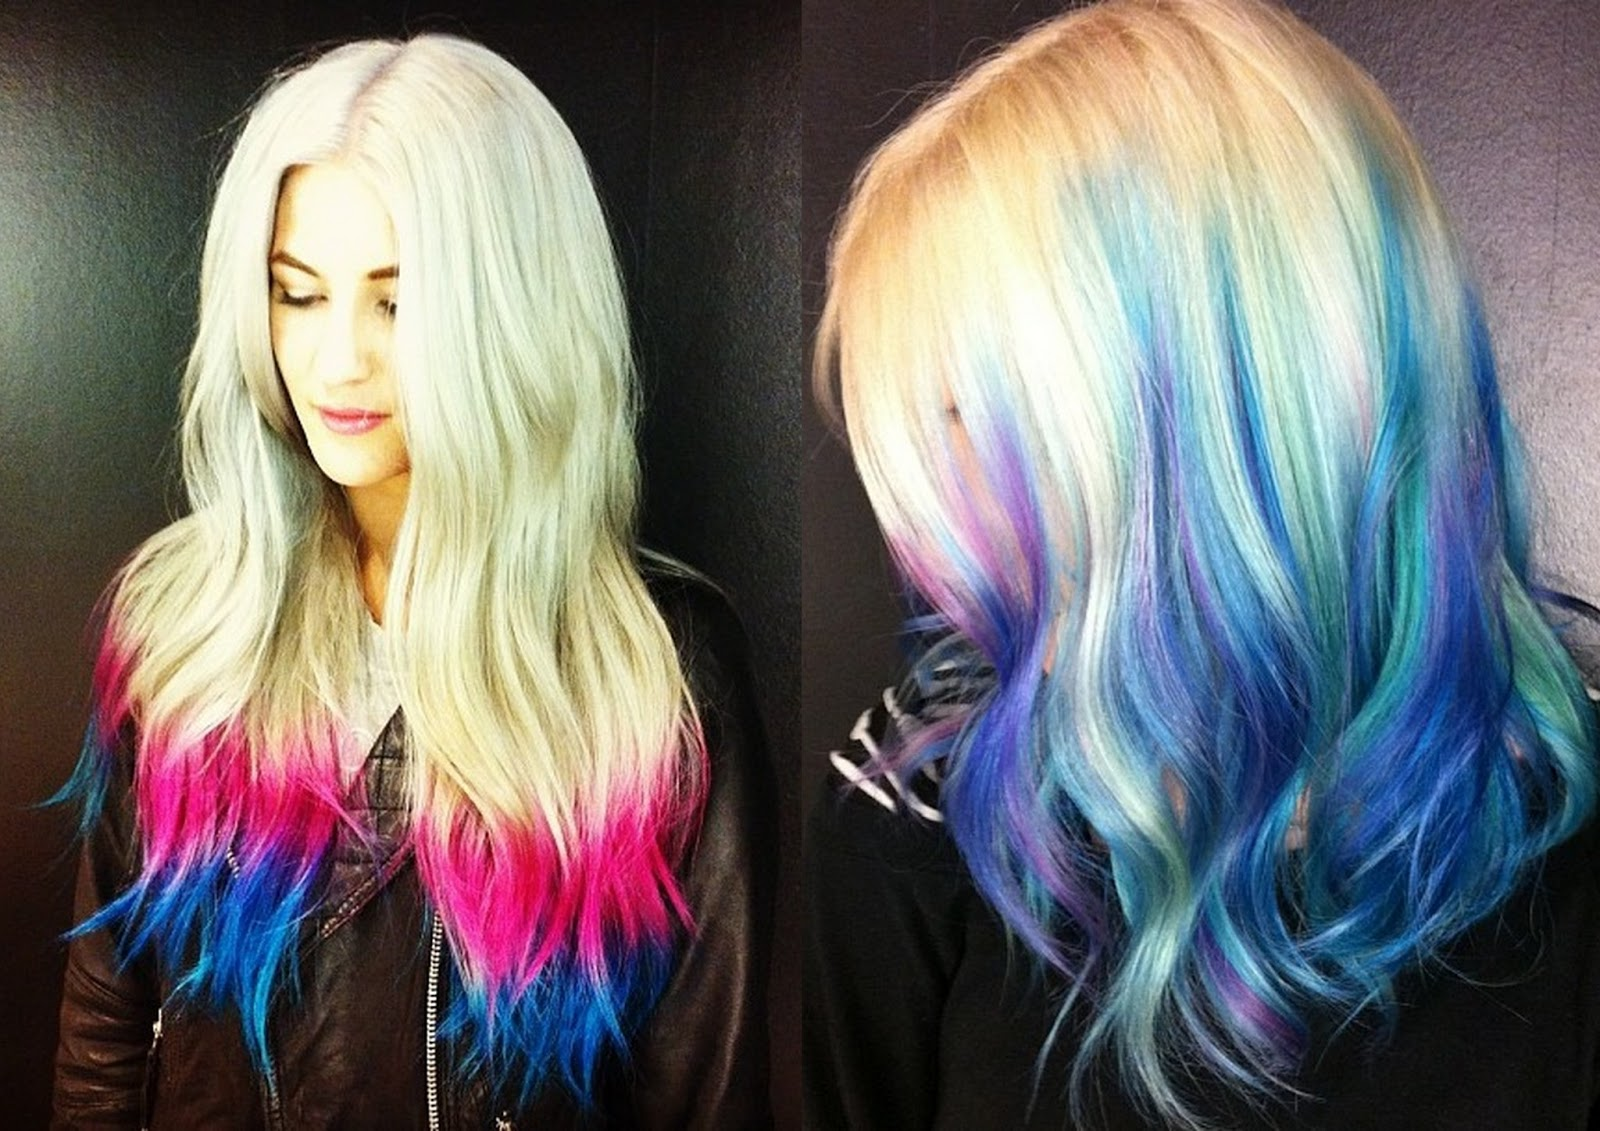 Hair Bleach : ... hair BLEACH Salon have got colour creativity down to a fine art